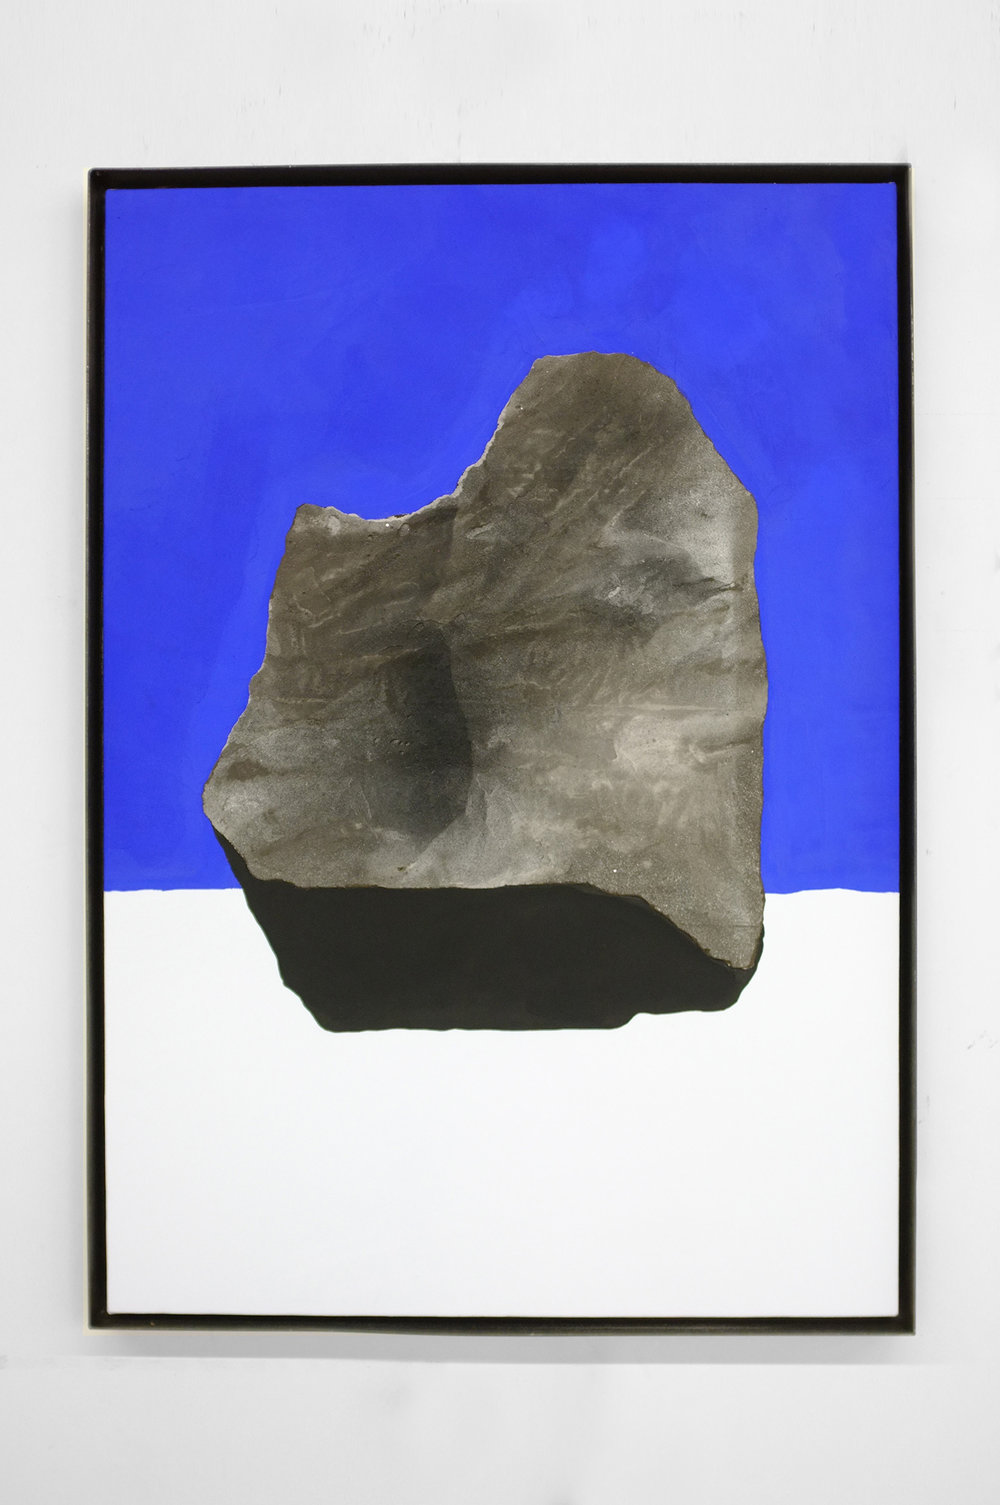 ROCK STUDY (BIG BROTHER)  2017  41 X 29 INCHES  CASEIN, ACRYLIC AND GROUT ON CANVAS OVER PANEL IN STEEL FRAME